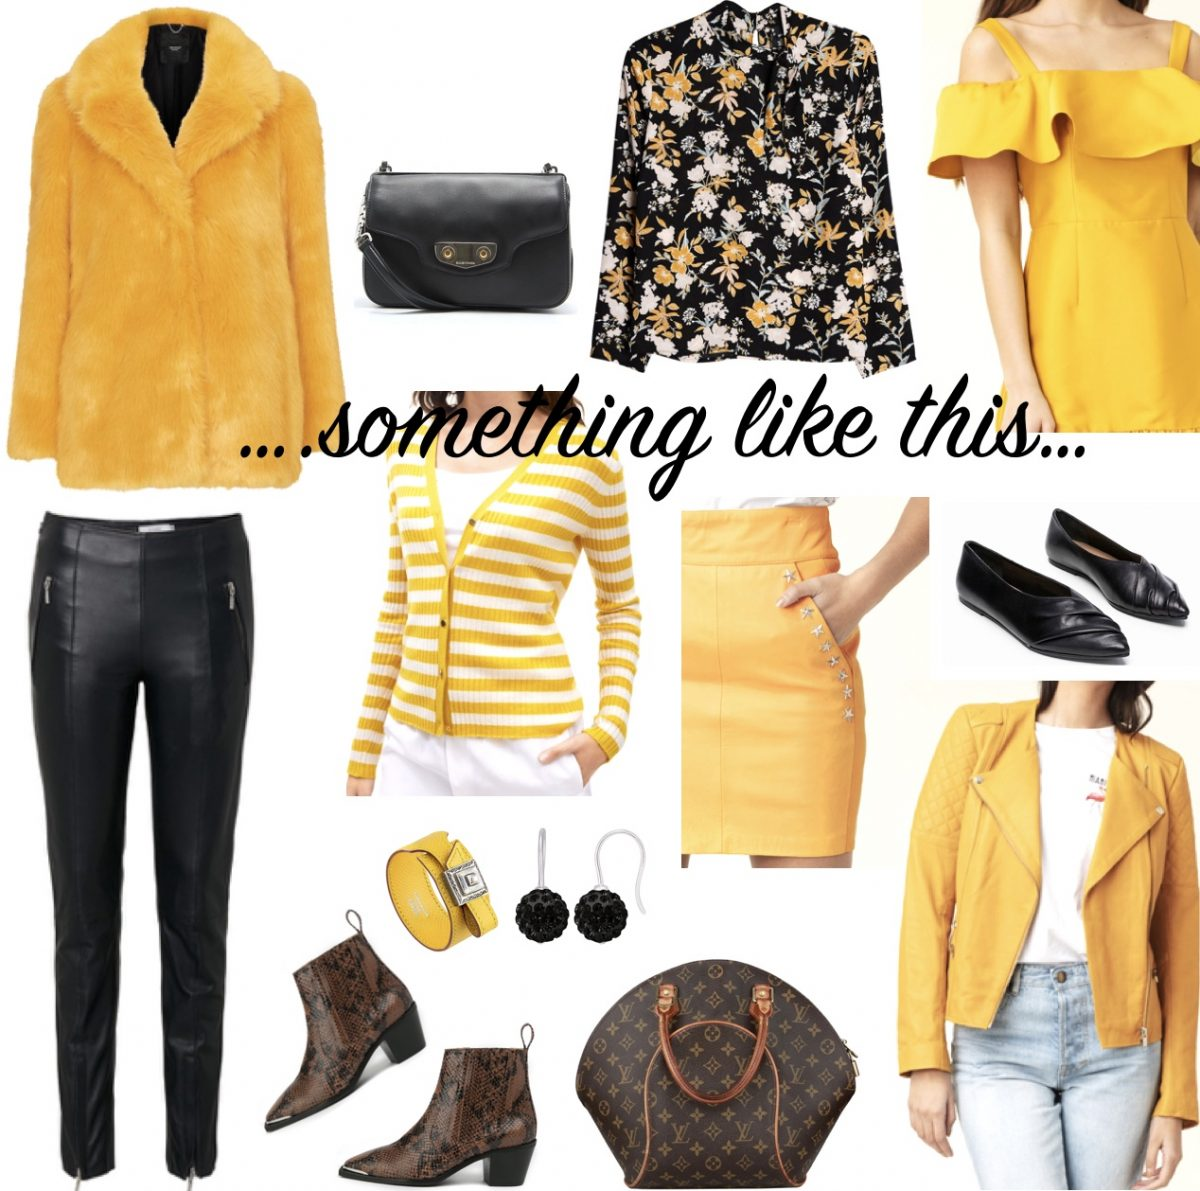 Add some yellow….